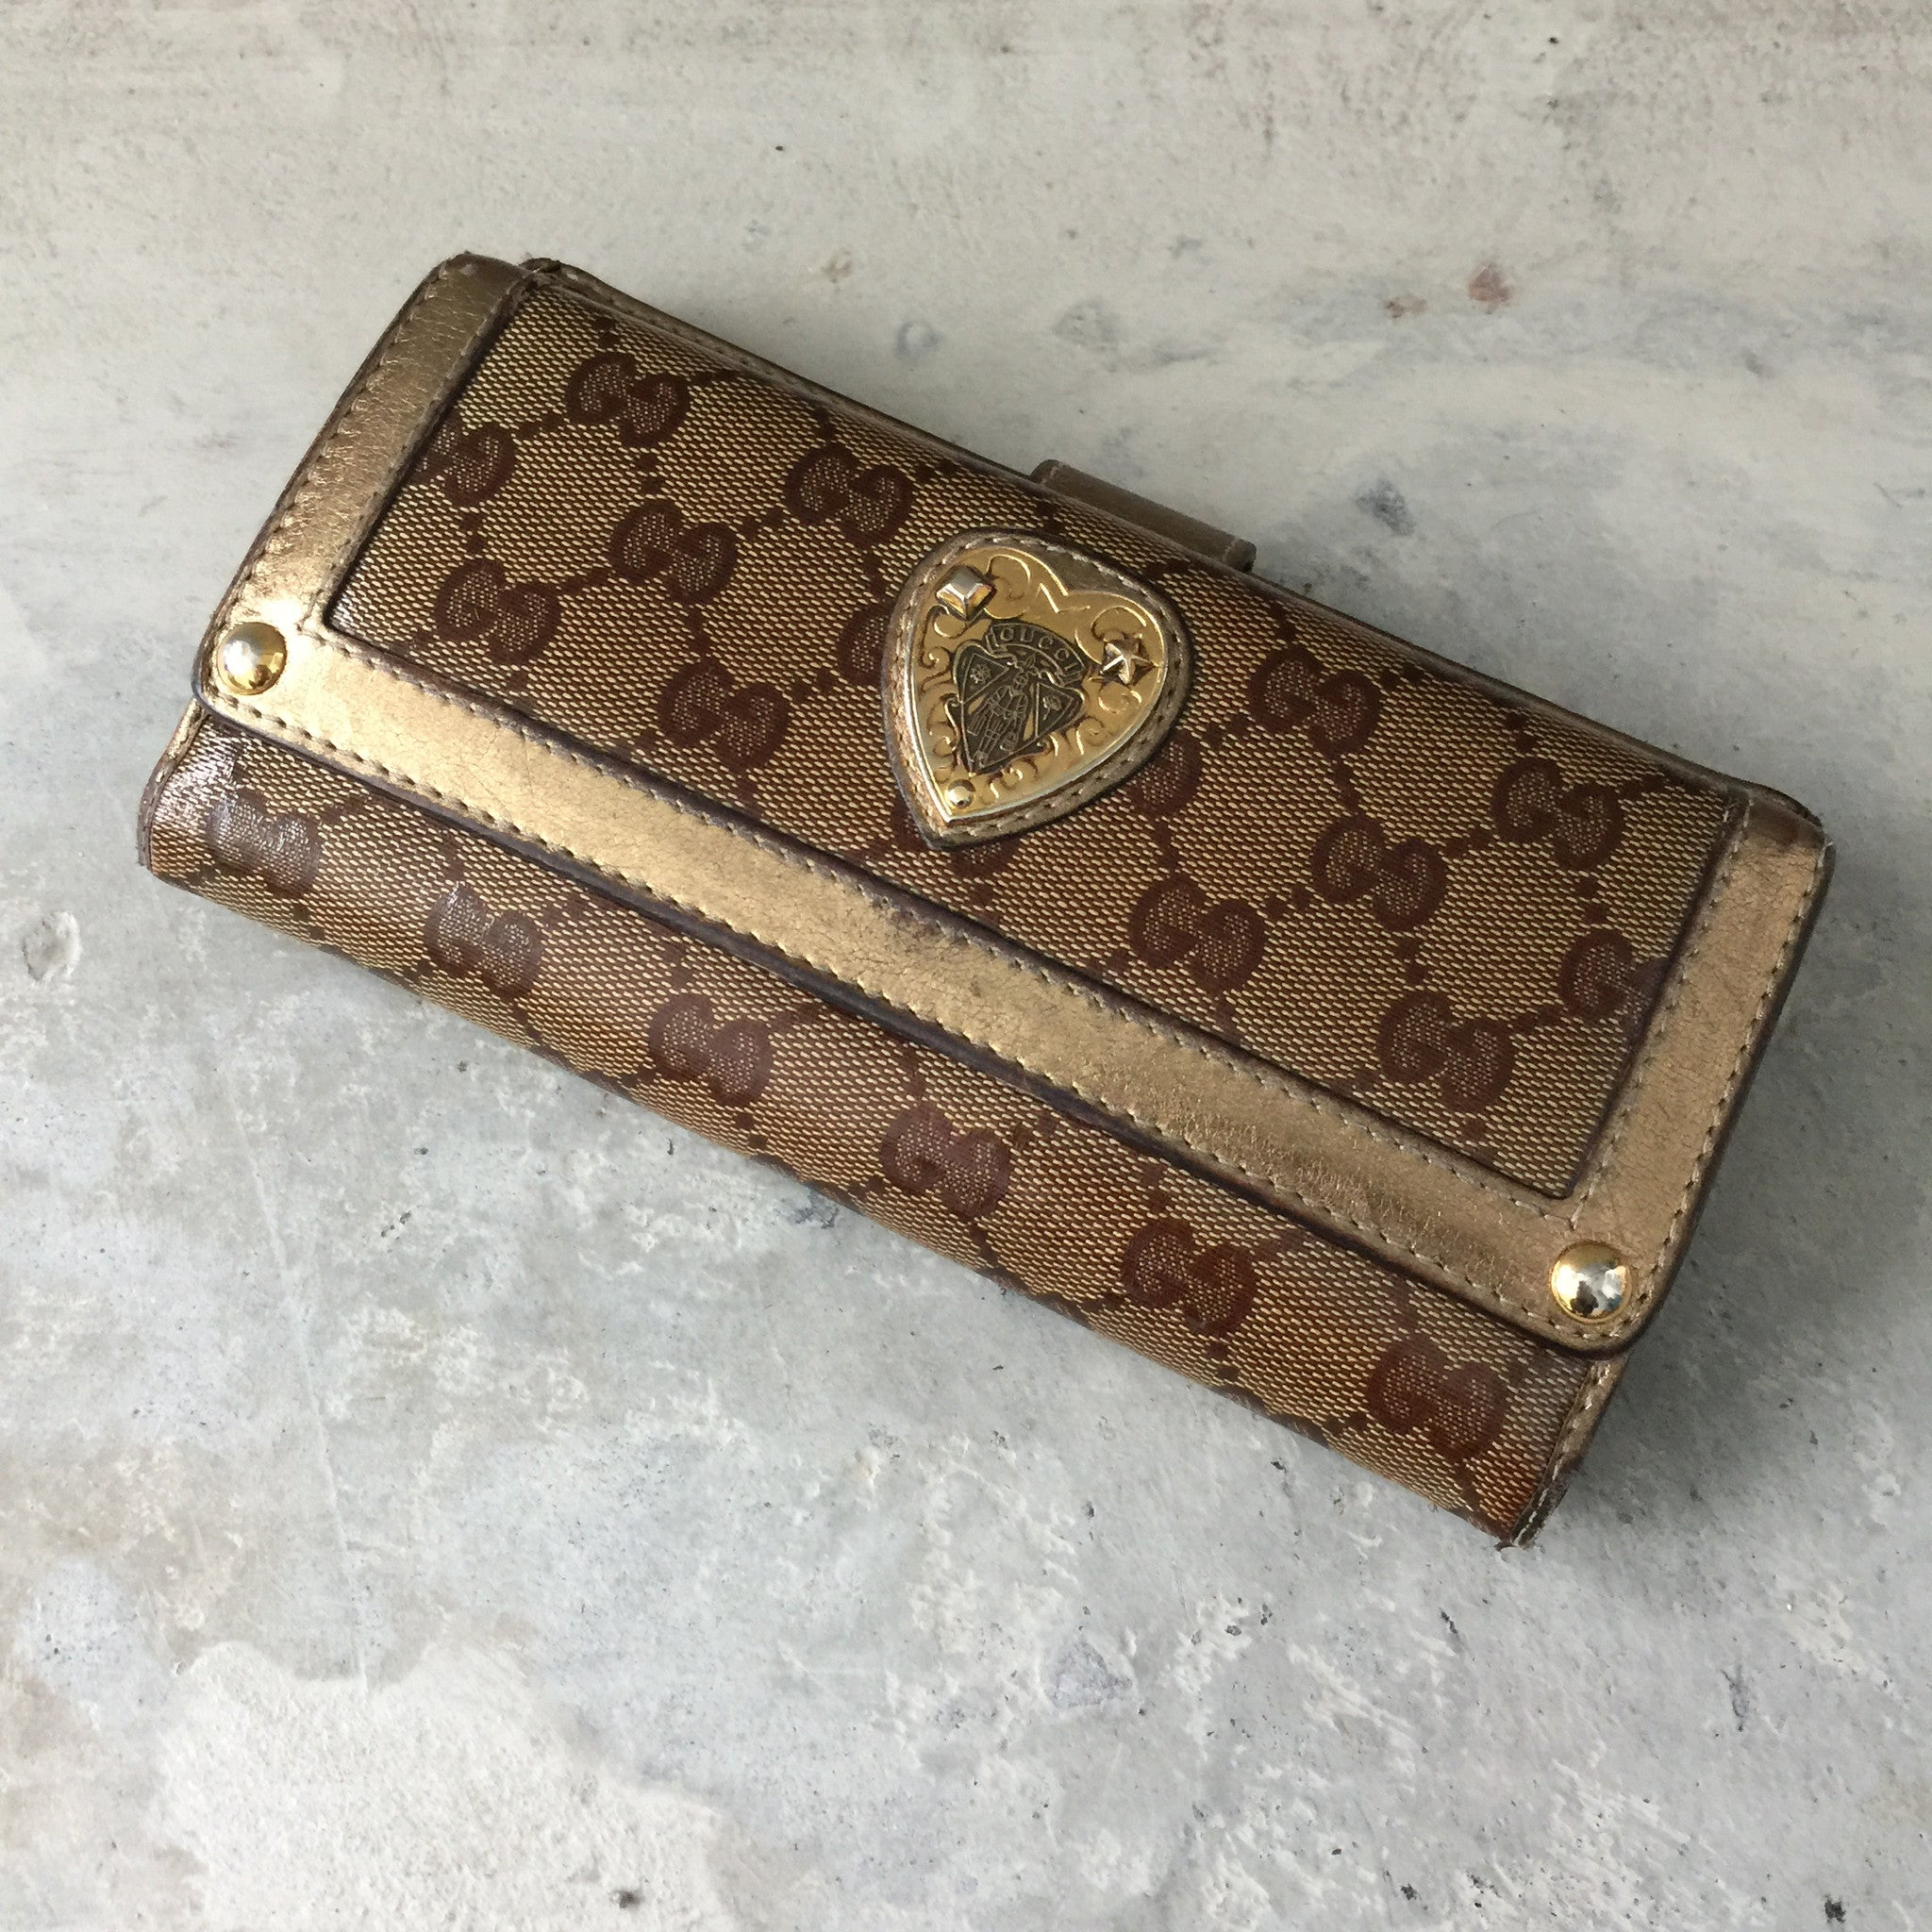 Authentic GUCCI Crystal Hysteria Wallet